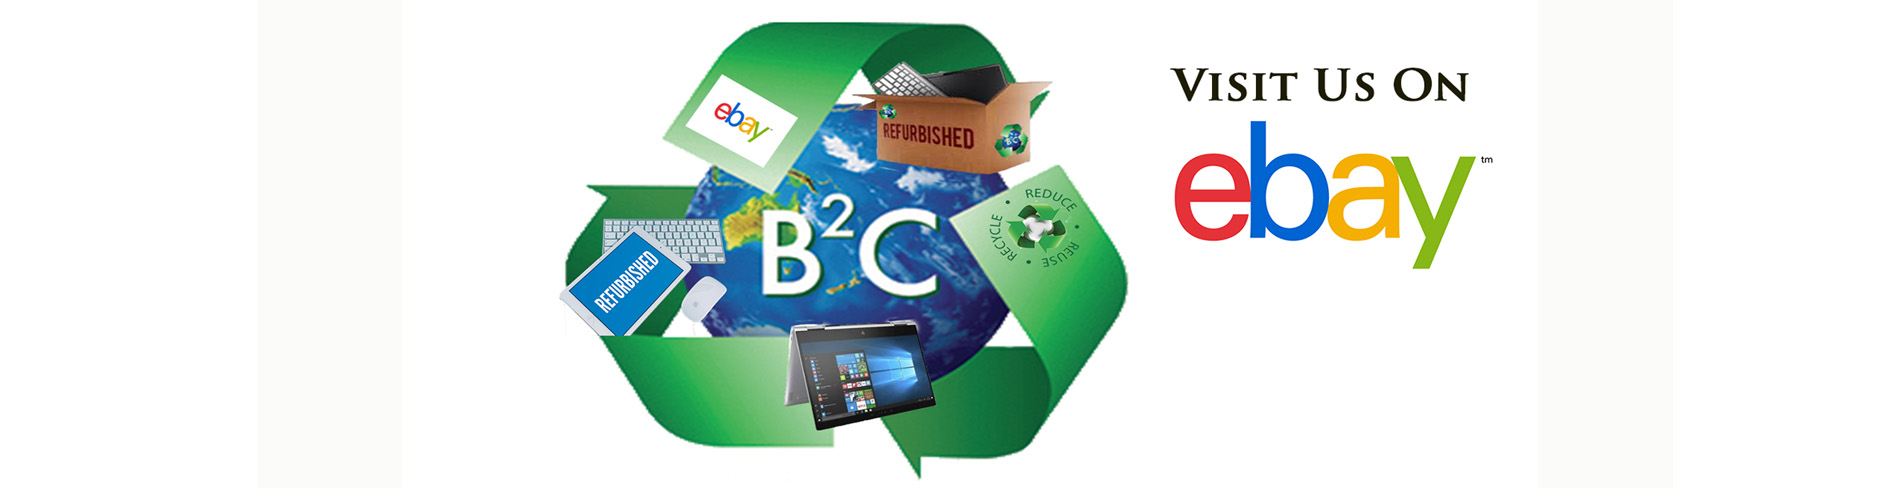 B2C Community IT Recyclers - 03 9005 0101